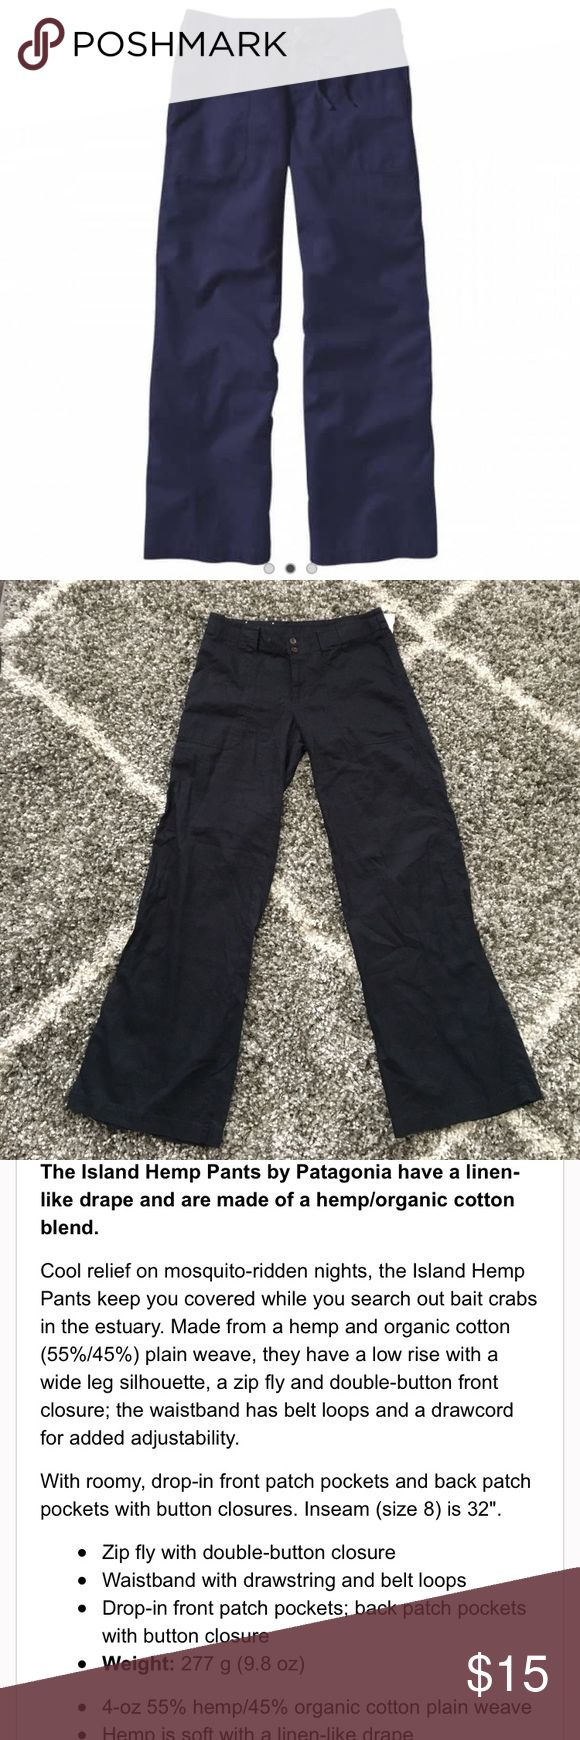 Women's Patagonia Pants Navy blue light weight pants. Draw strings are missing. In good condition. Women's island hemp pants. Patagonia Pants Wide Leg